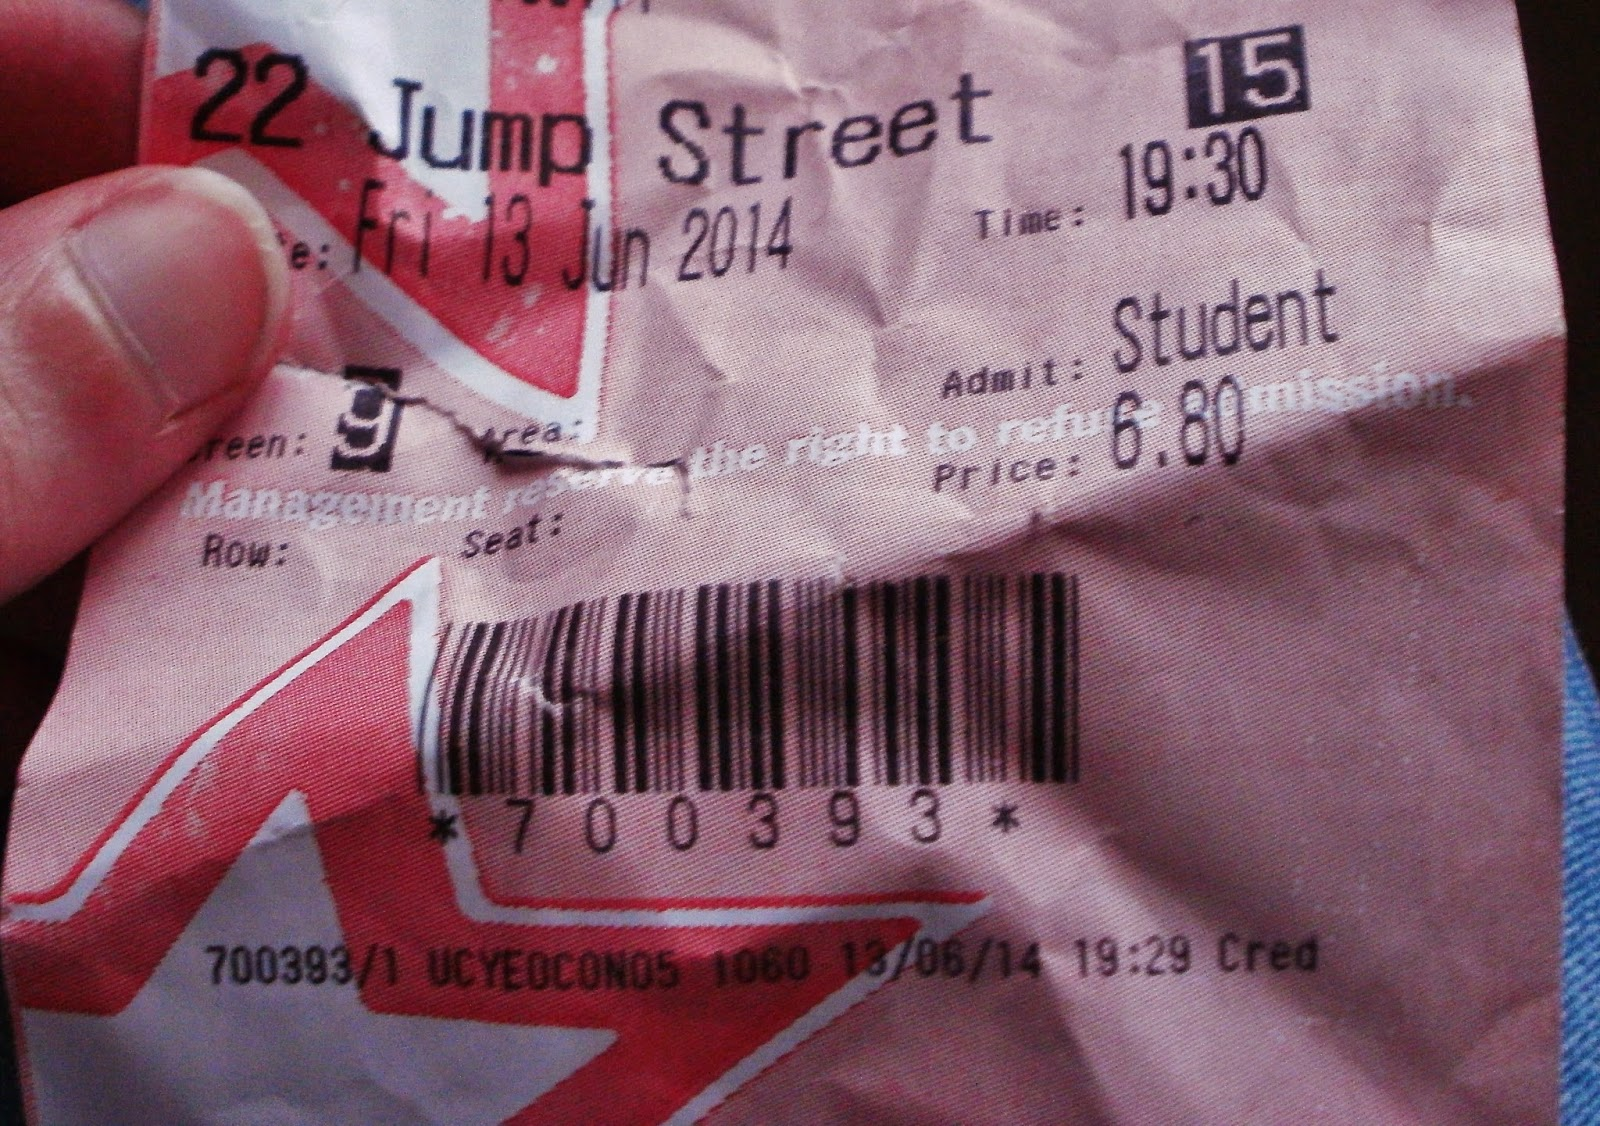 cinema ticket 22 Jump Street